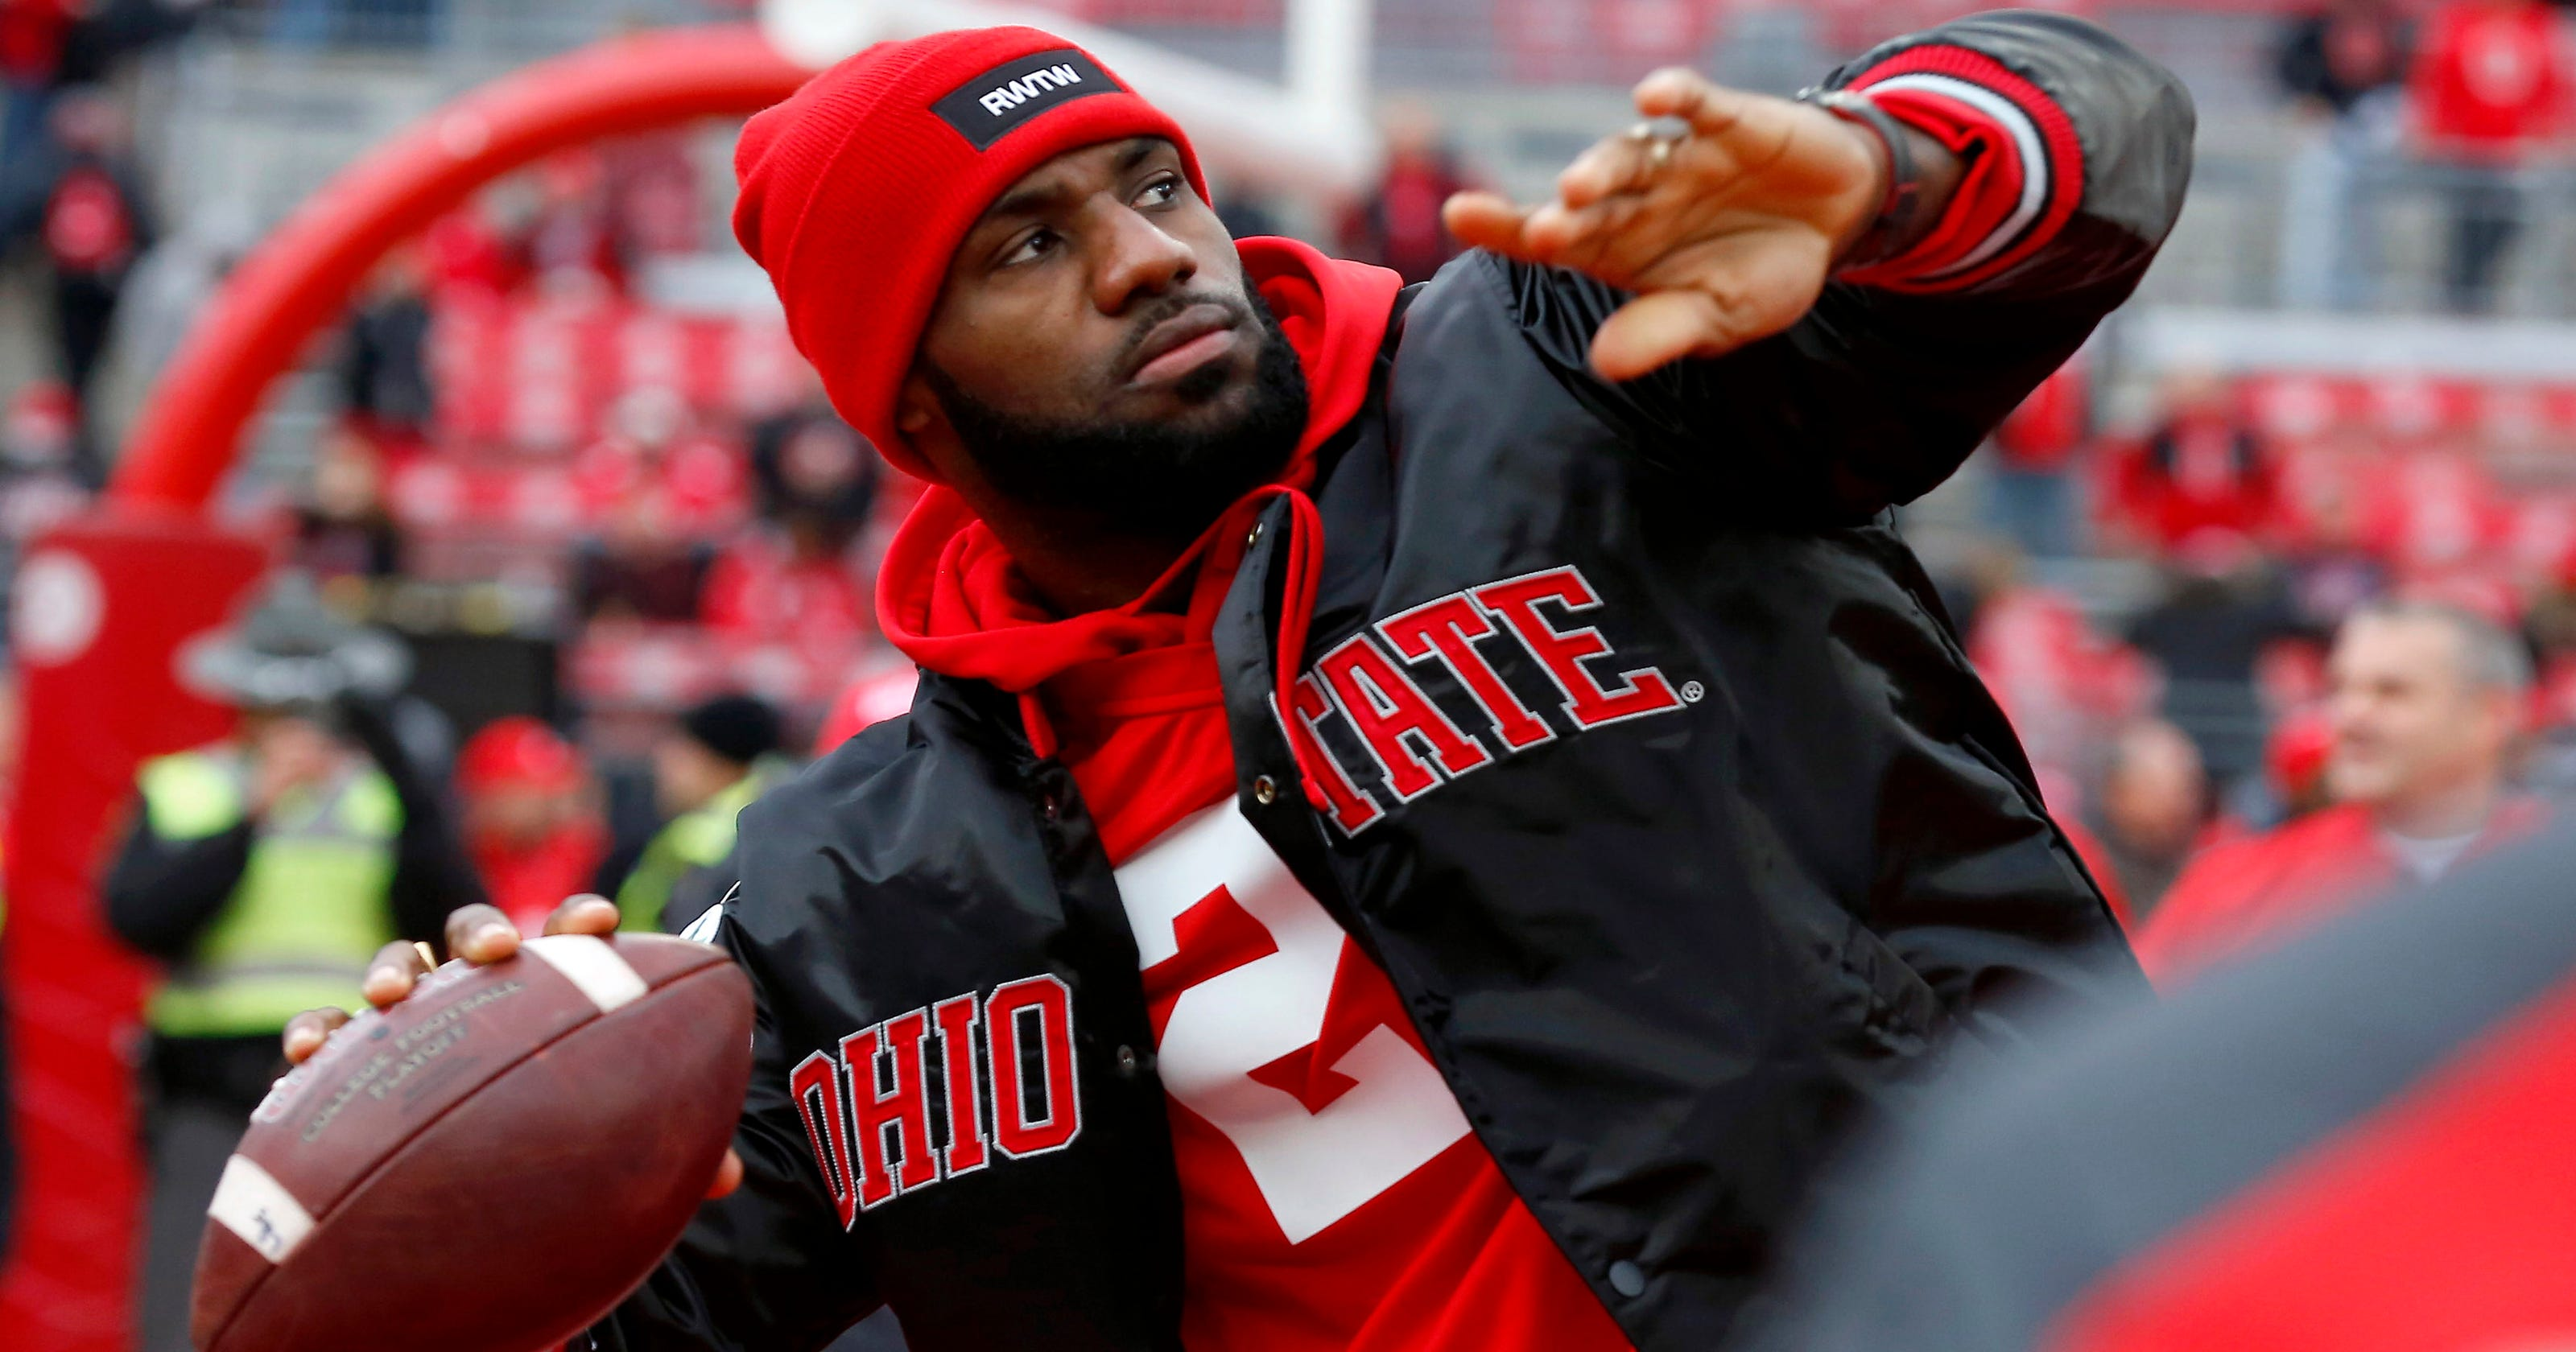 Nike's LeBron James Ohio State Buckeyes T-shirt has 'M' crossed out